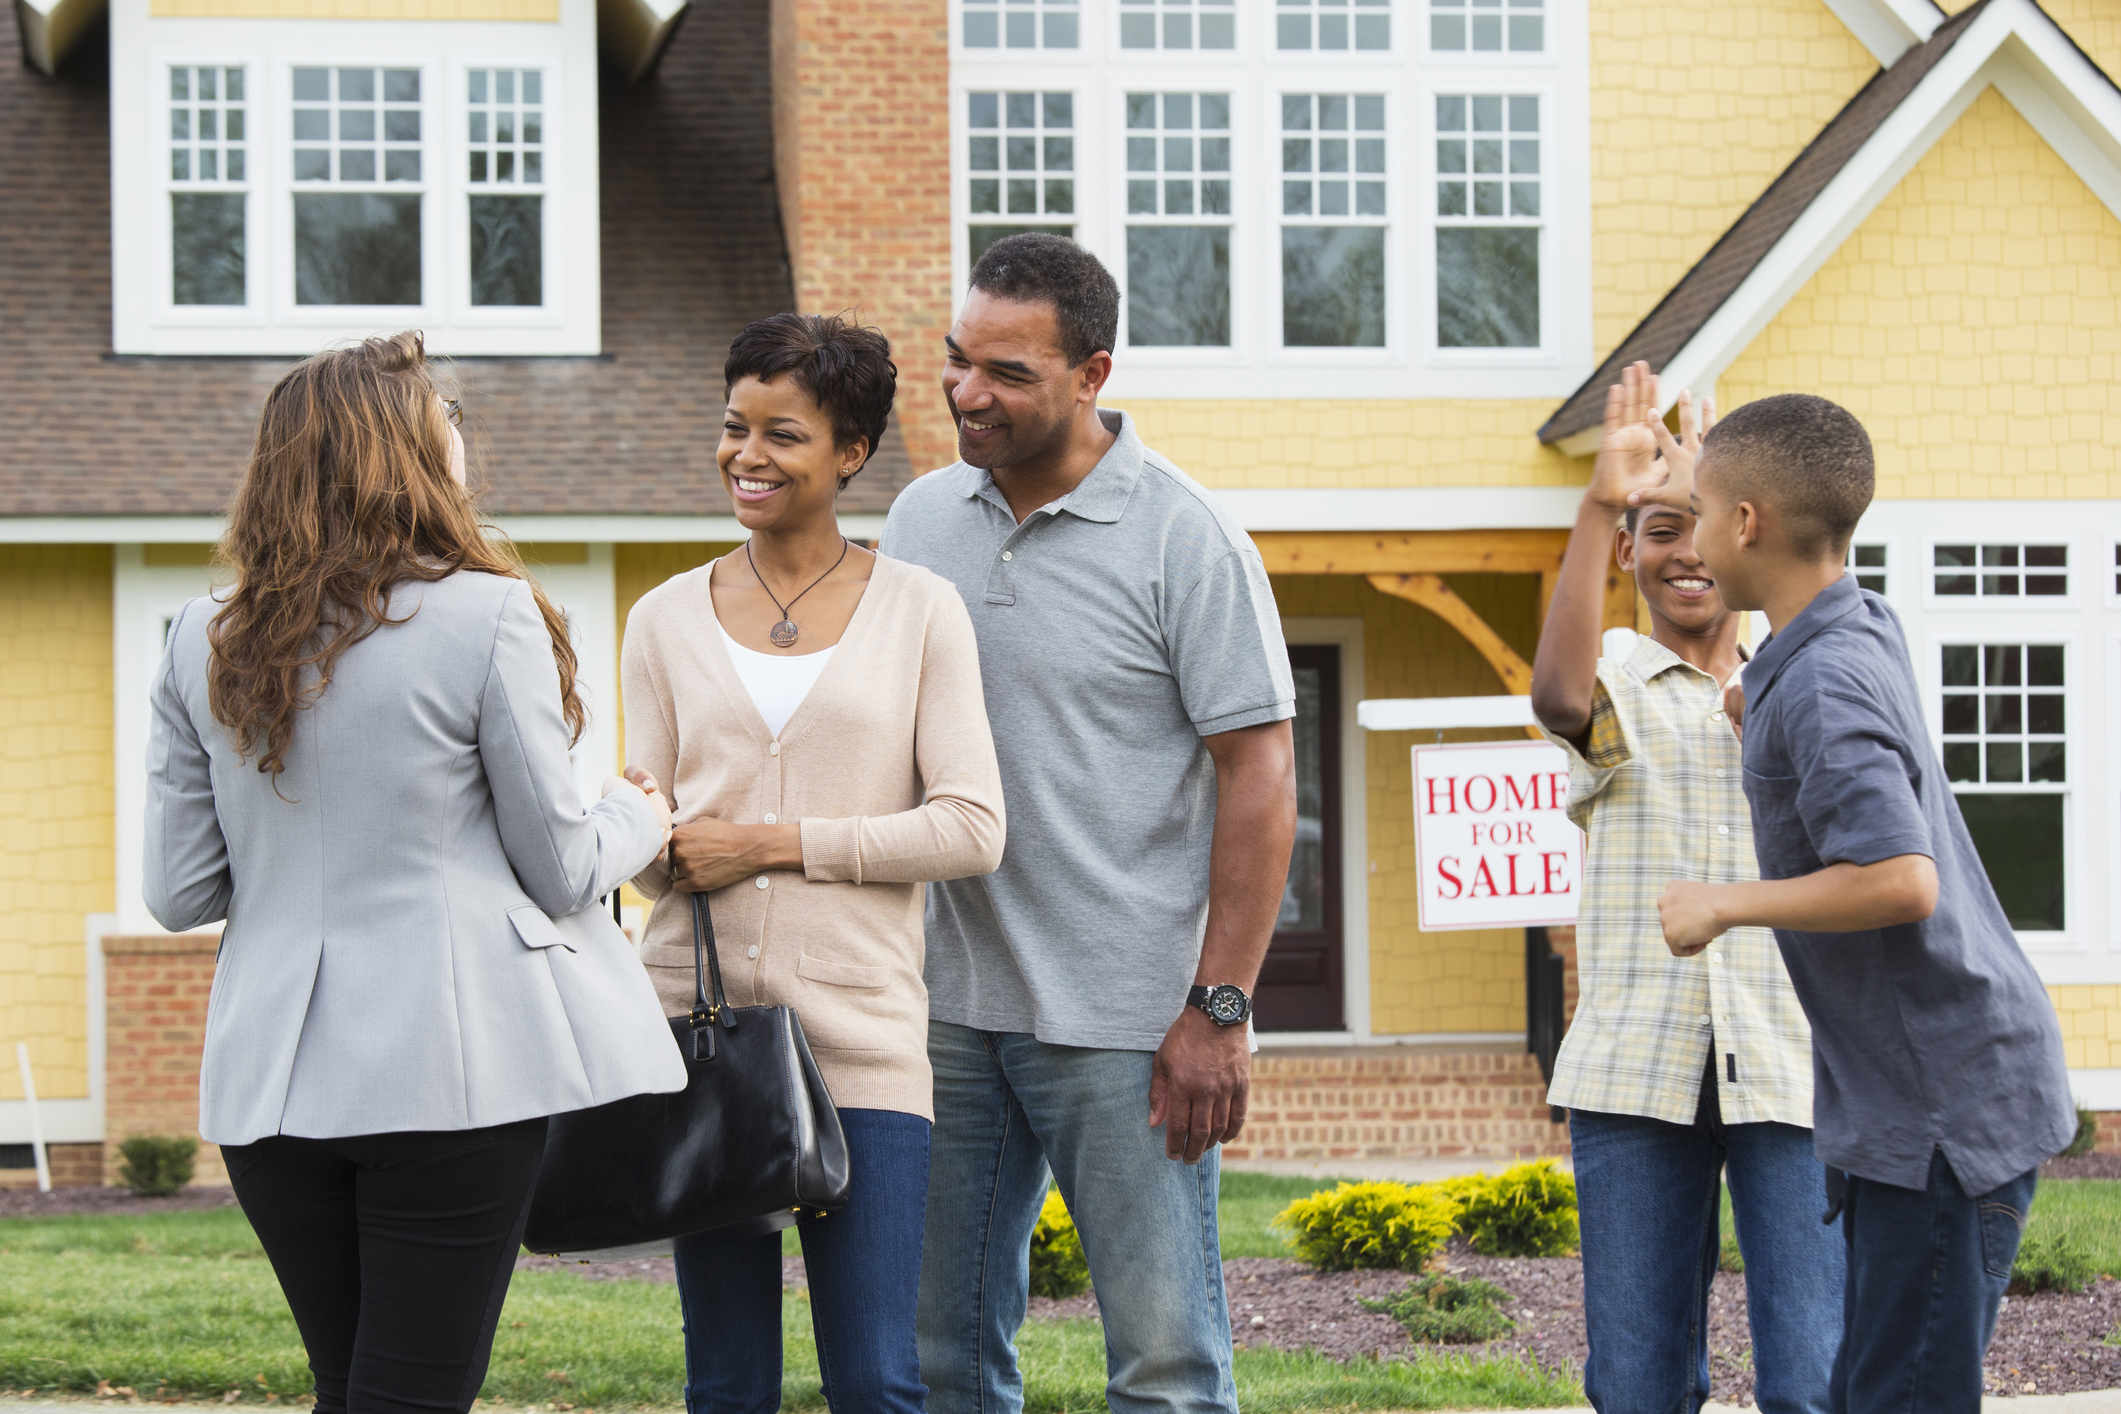 Buying a New Home While Selling Your Current Home